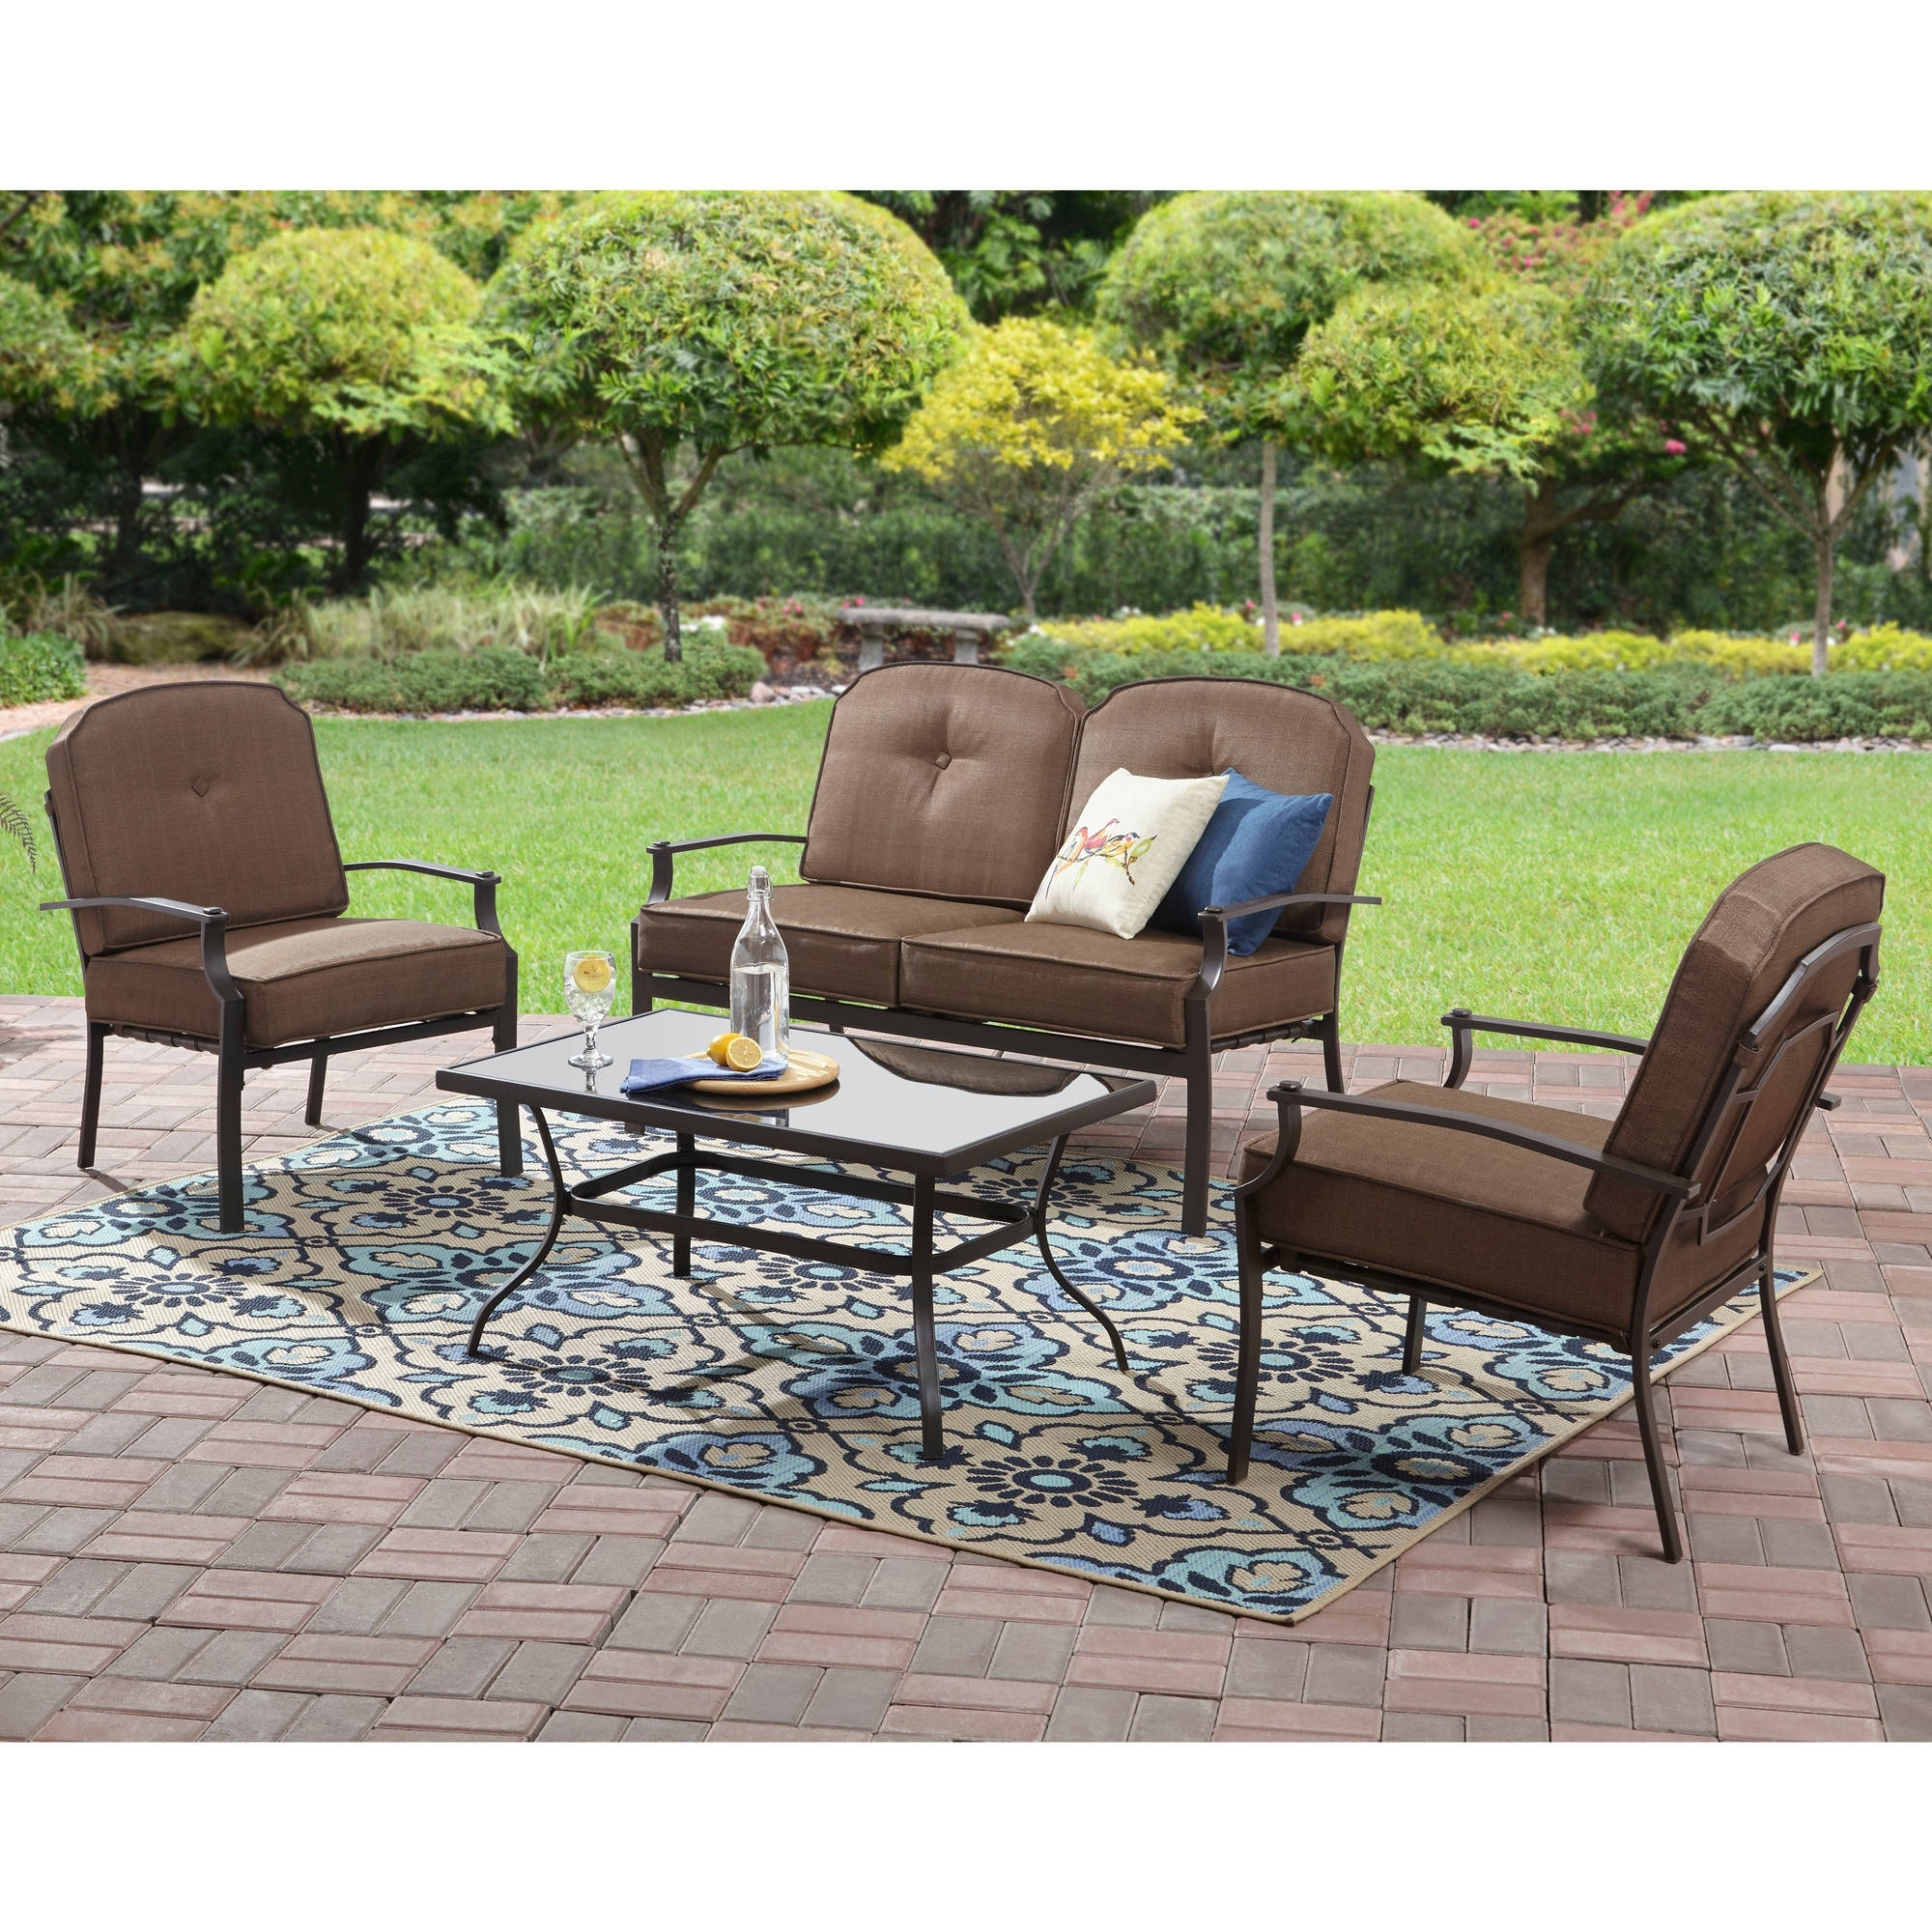 Average Cost Of Concrete Patio Tags : 4 Piece Conversation Set Patio With Regard To Preferred Patio Furniture Conversation Sets At Home Depot (View 5 of 15)